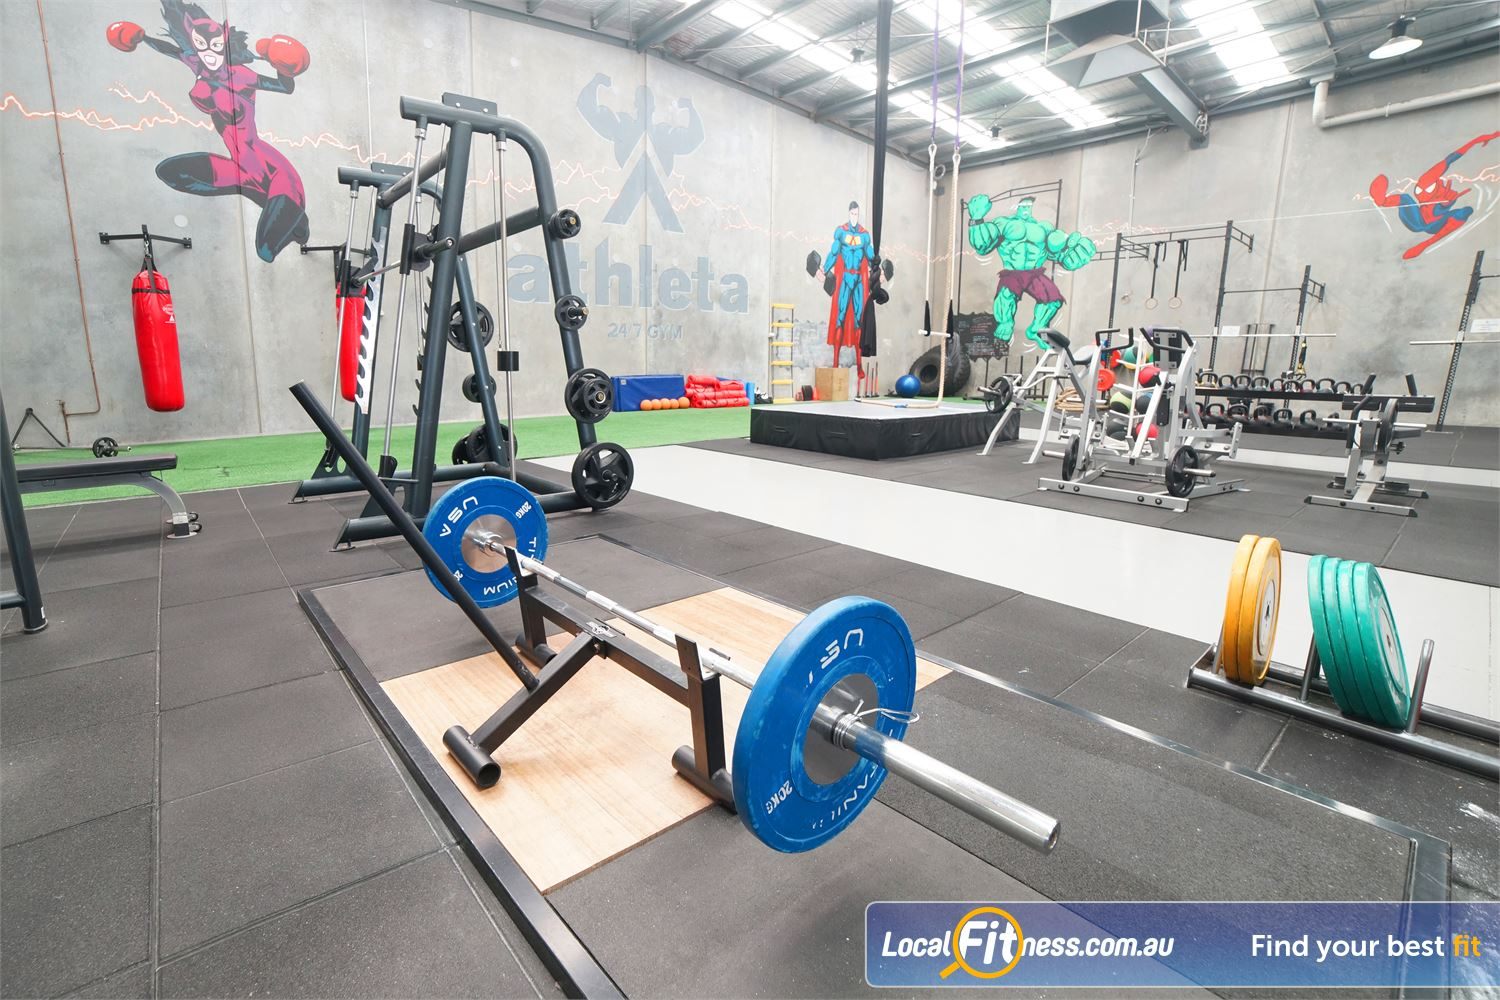 Athleta Gym Near Williamstown Get into strength training with our olympic lifting platforms.